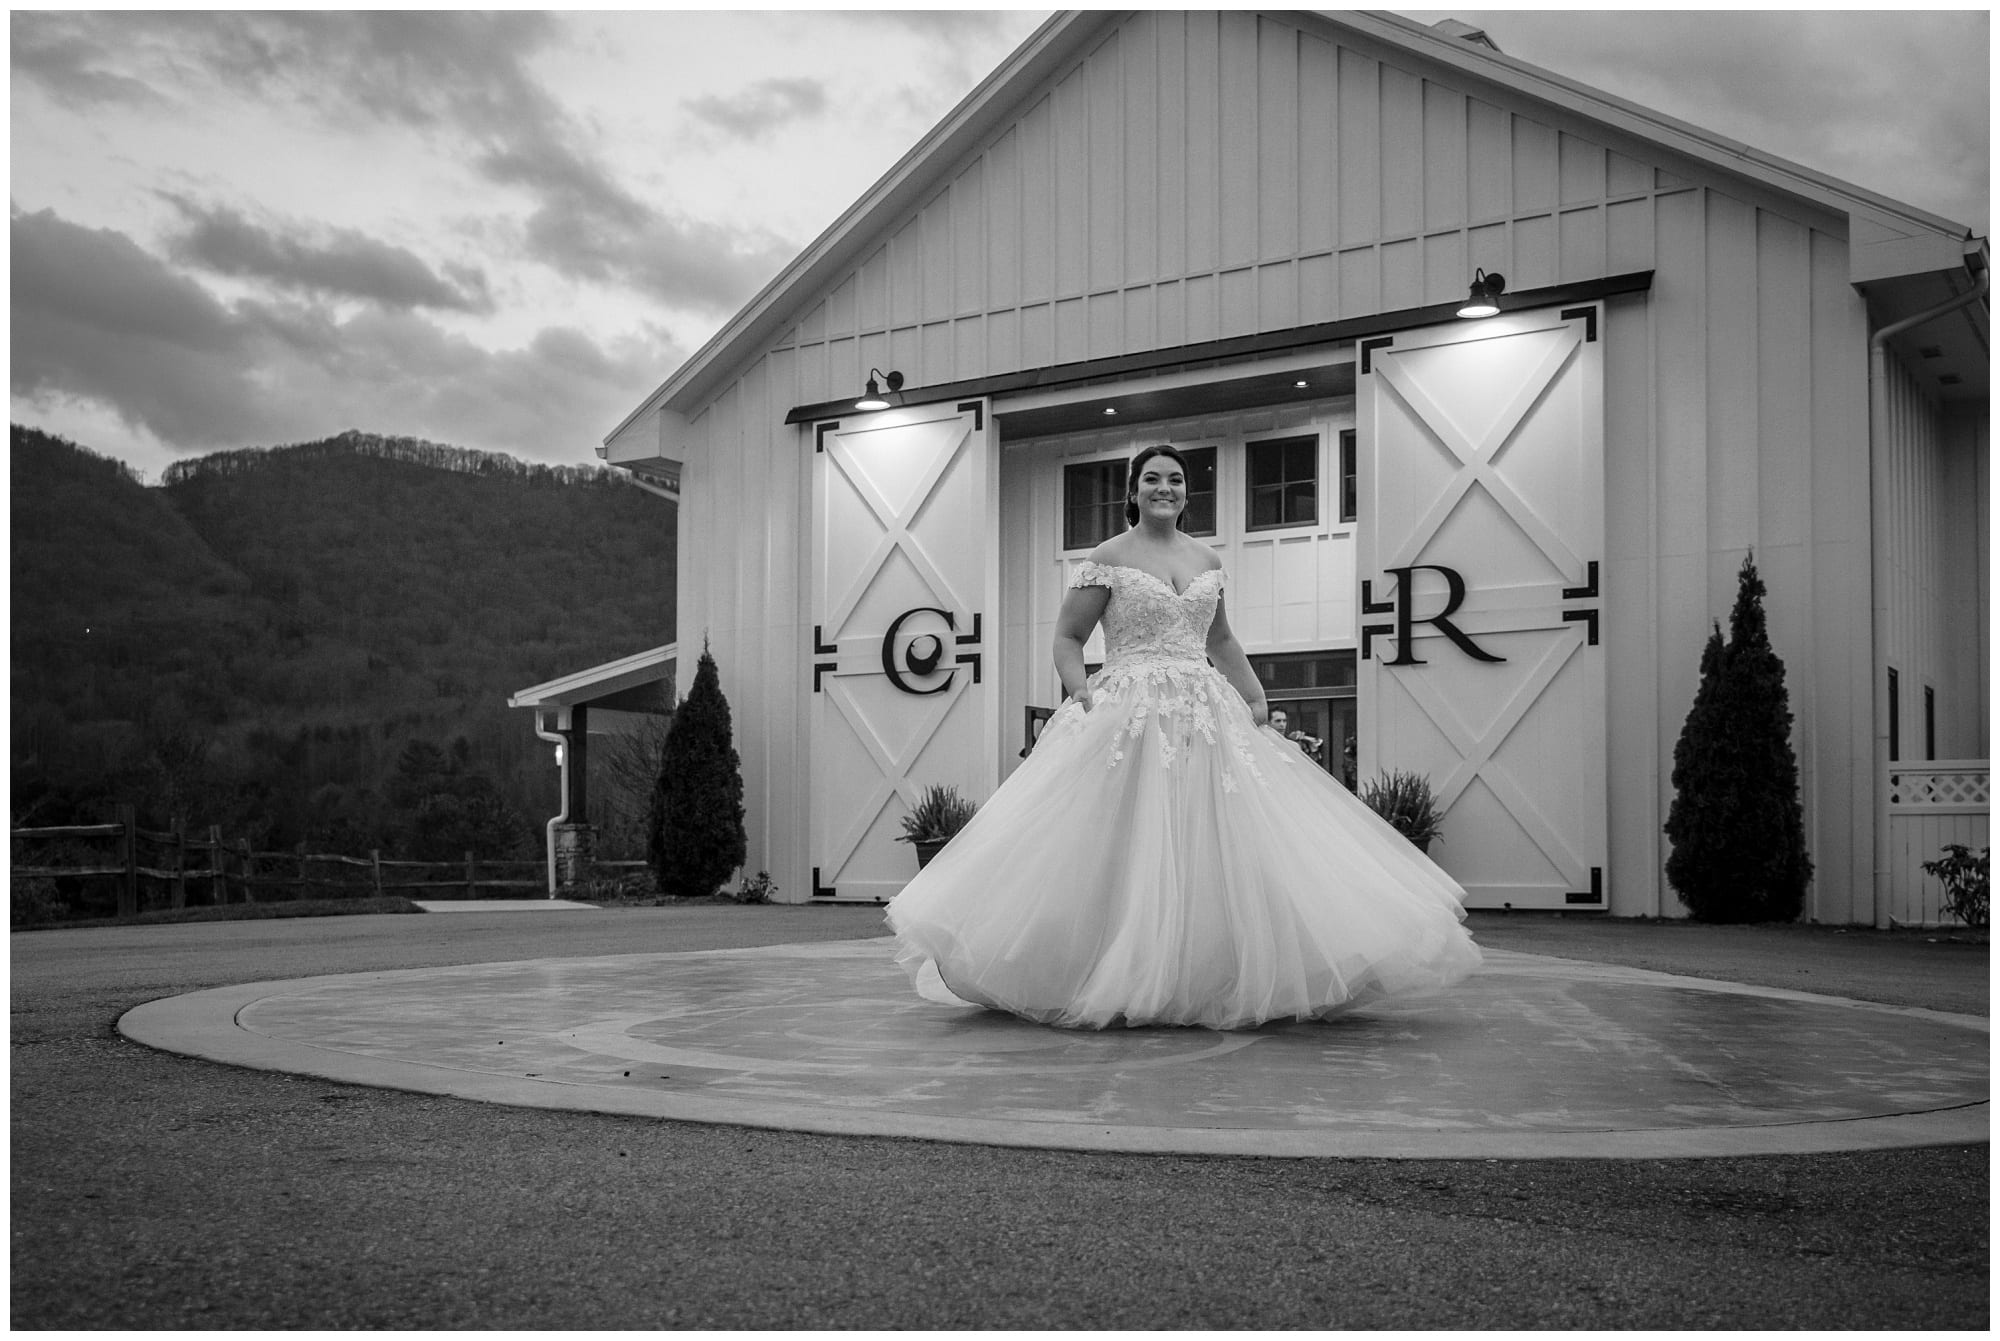 bride in front of barn doors at wedding venue